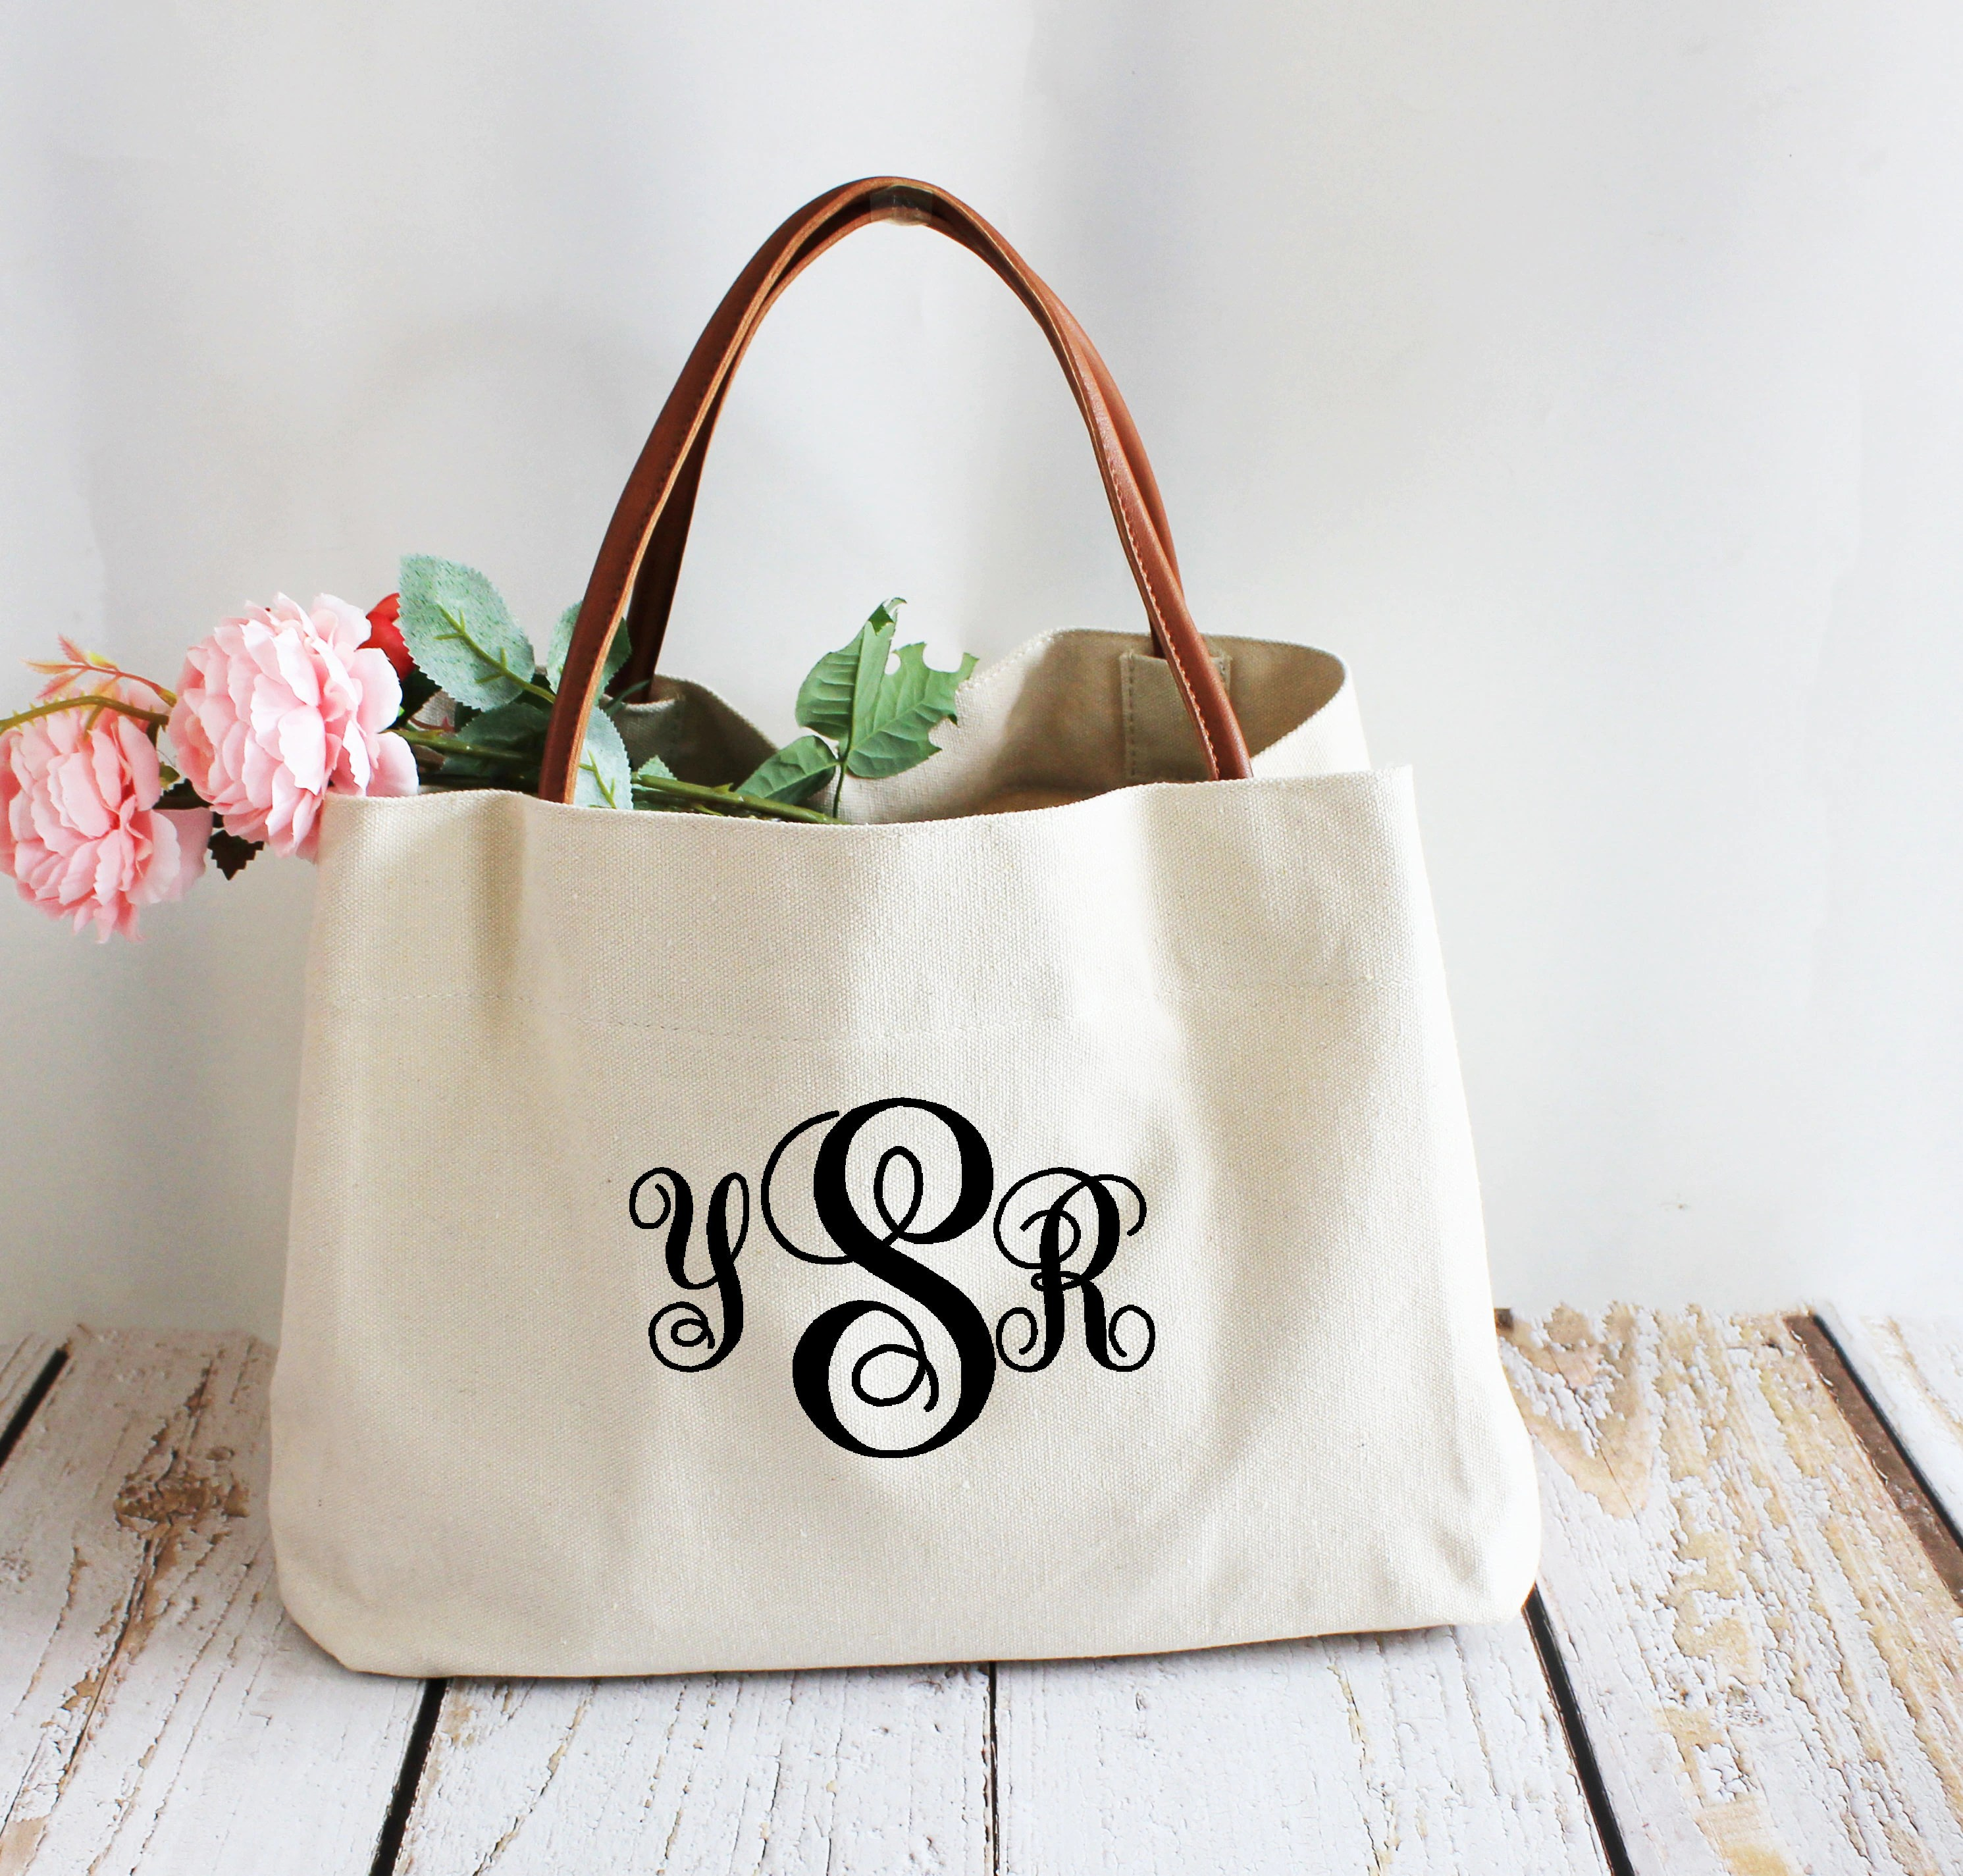 0A0000000d0                                                                                                                                                                                    Personalized Burlap Bag Tote Custom Monogram large Beach Bag backpack wedding Bag bride Bachelorette Party Favor Bridesmaid gift for her                                                                    KIMBERLYKozakk         From shop KIMBERLYKozakk                               4.5 out of 5 stars                                                                                                                                                                                                                                                          (142)                 142 reviews                                                                                   CA$30.23                                                                             CA$33.59                                                              CA$33.59                                                                                               (10% off)